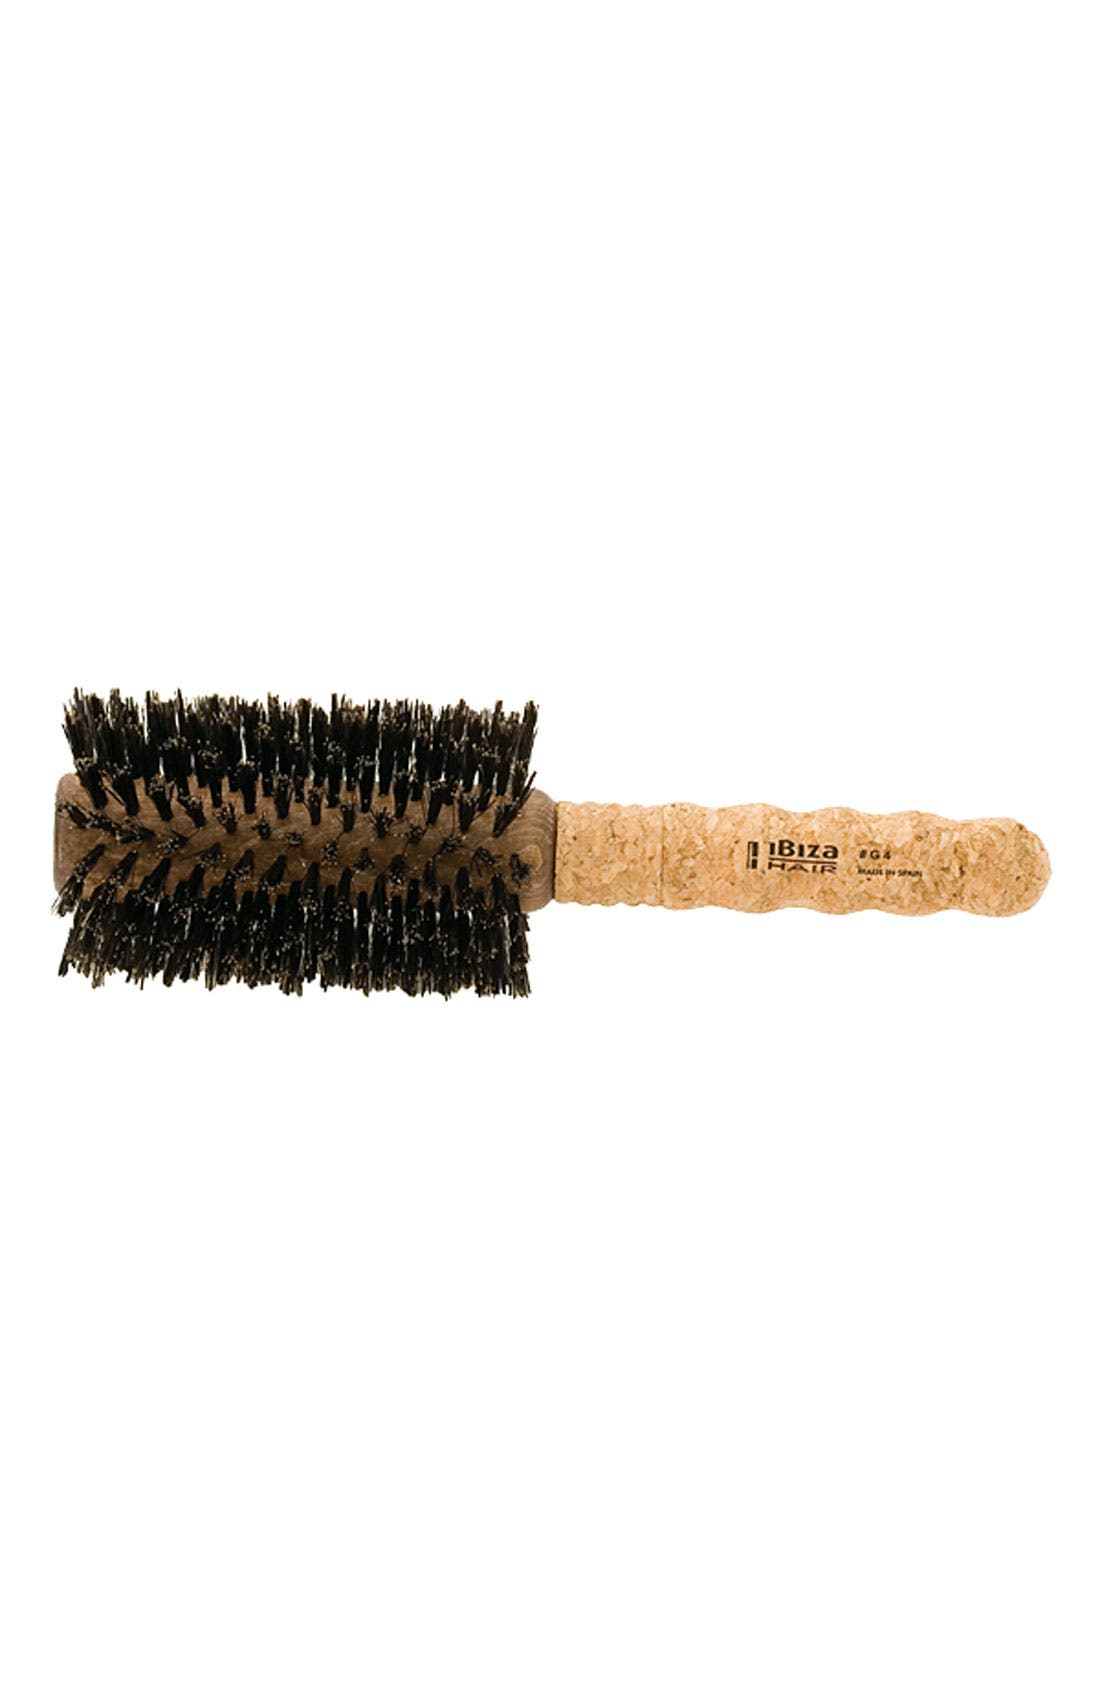 IBIZA HAIR G4 Swirled Extended Cork Round Brush, Main, color, NO COLOR